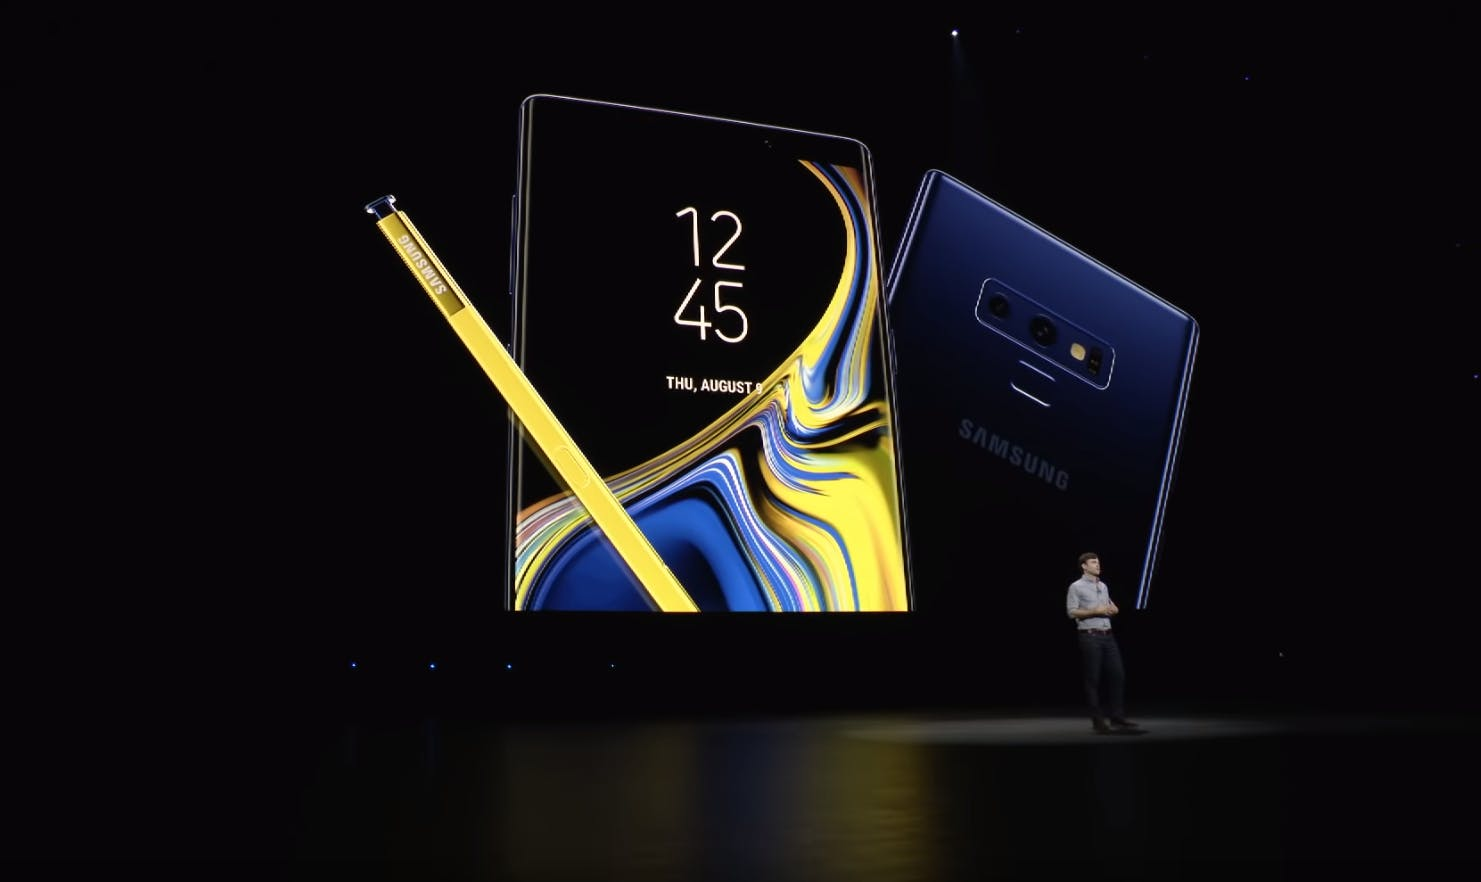 The Galaxy Note 9. Samsung Unpacked Event 2018.